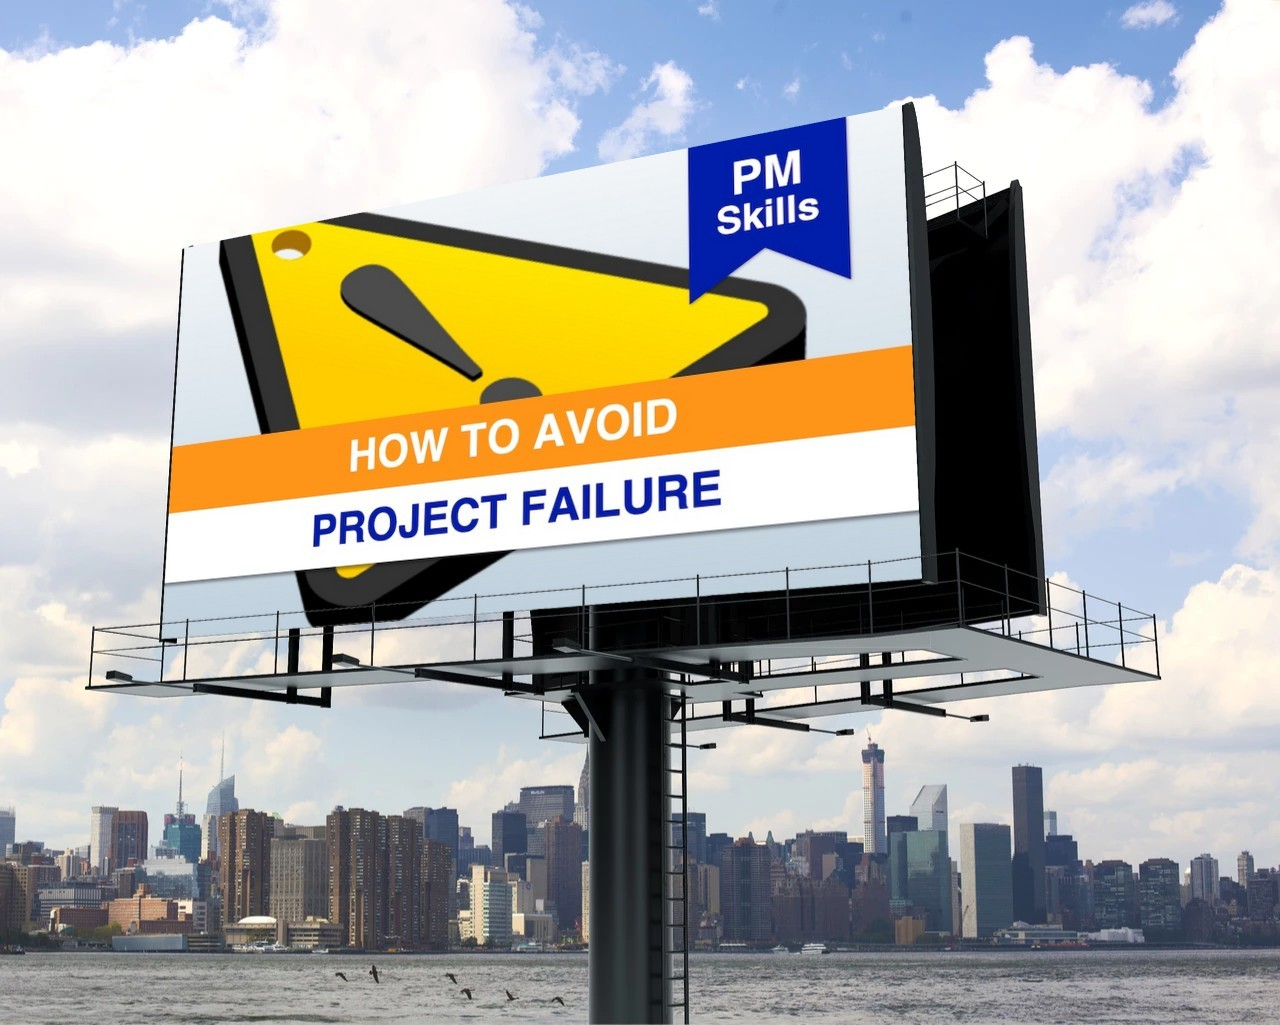 Avoid Failure billboard